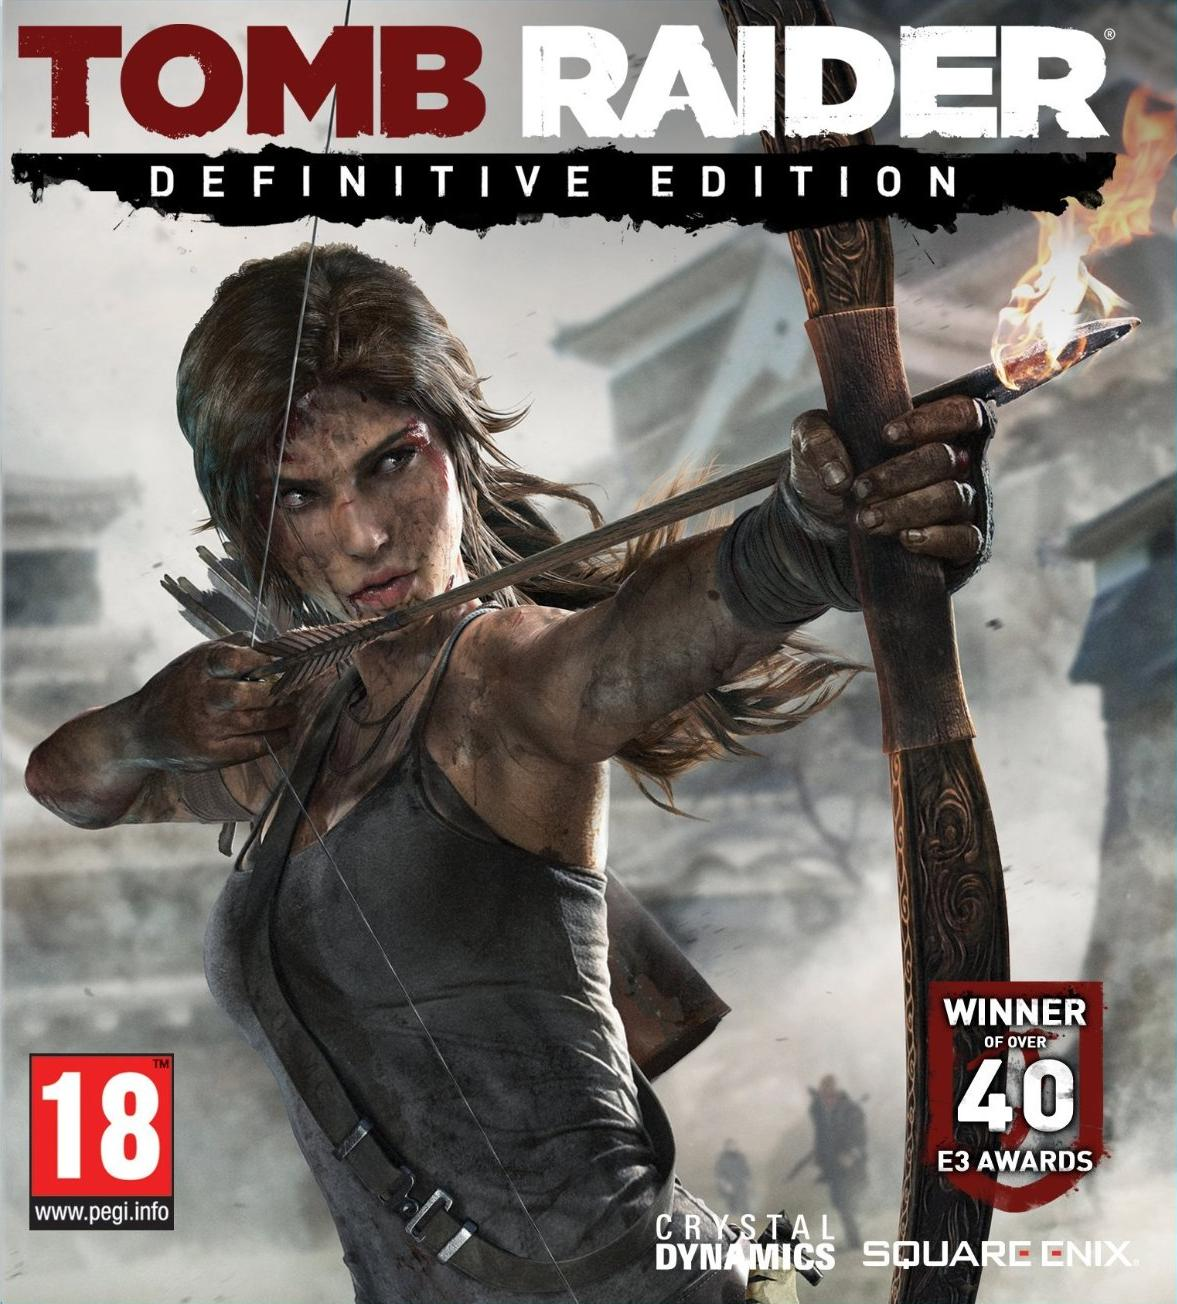 Tomb Raider Definitive Edition For Xbox One And Ps4 4k Hd: Tomb Raider: Definitive Edition Review